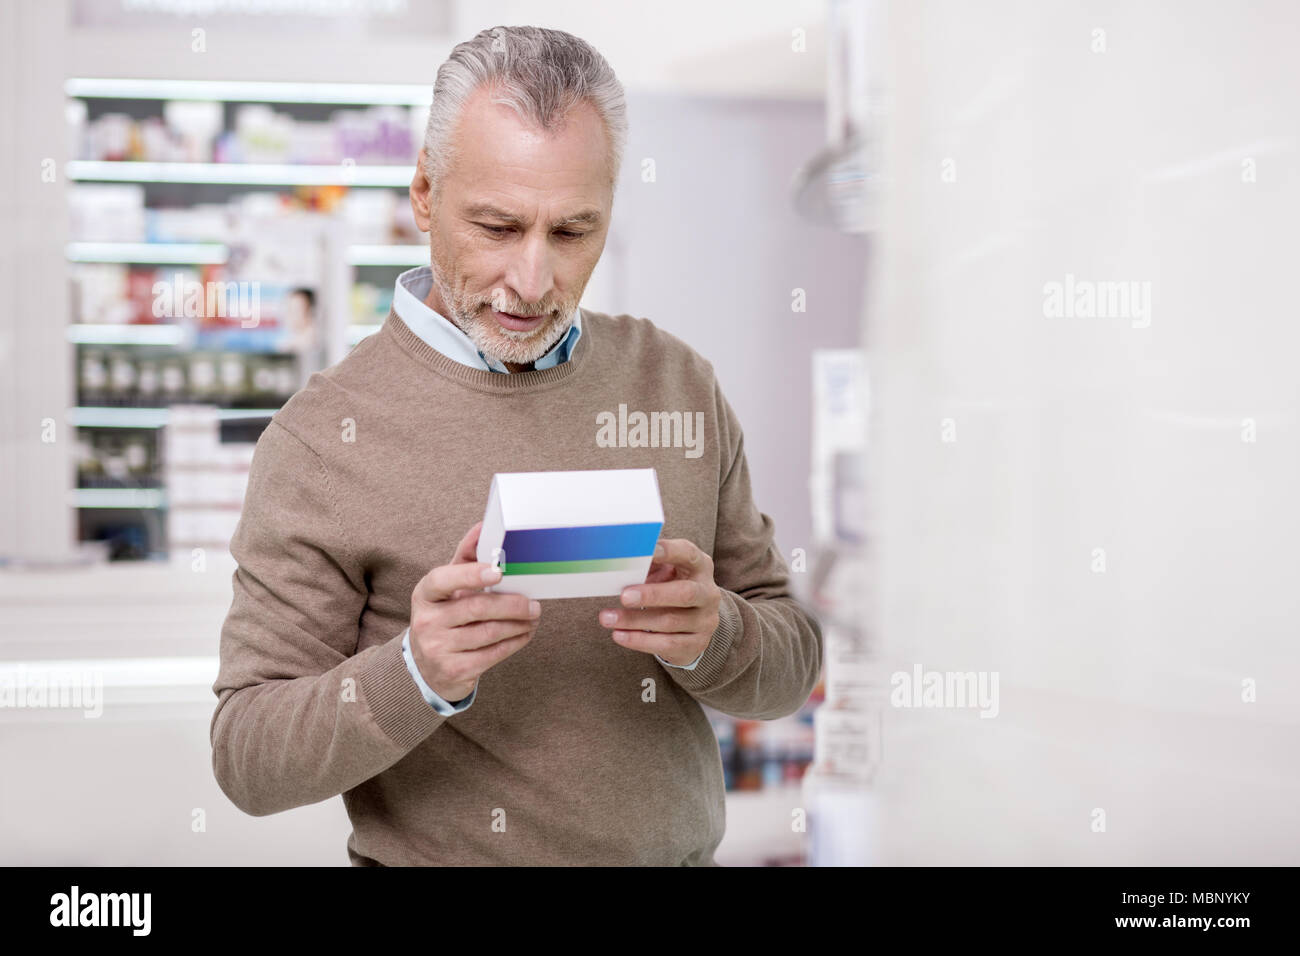 Concentrated senior man examining product - Stock Image